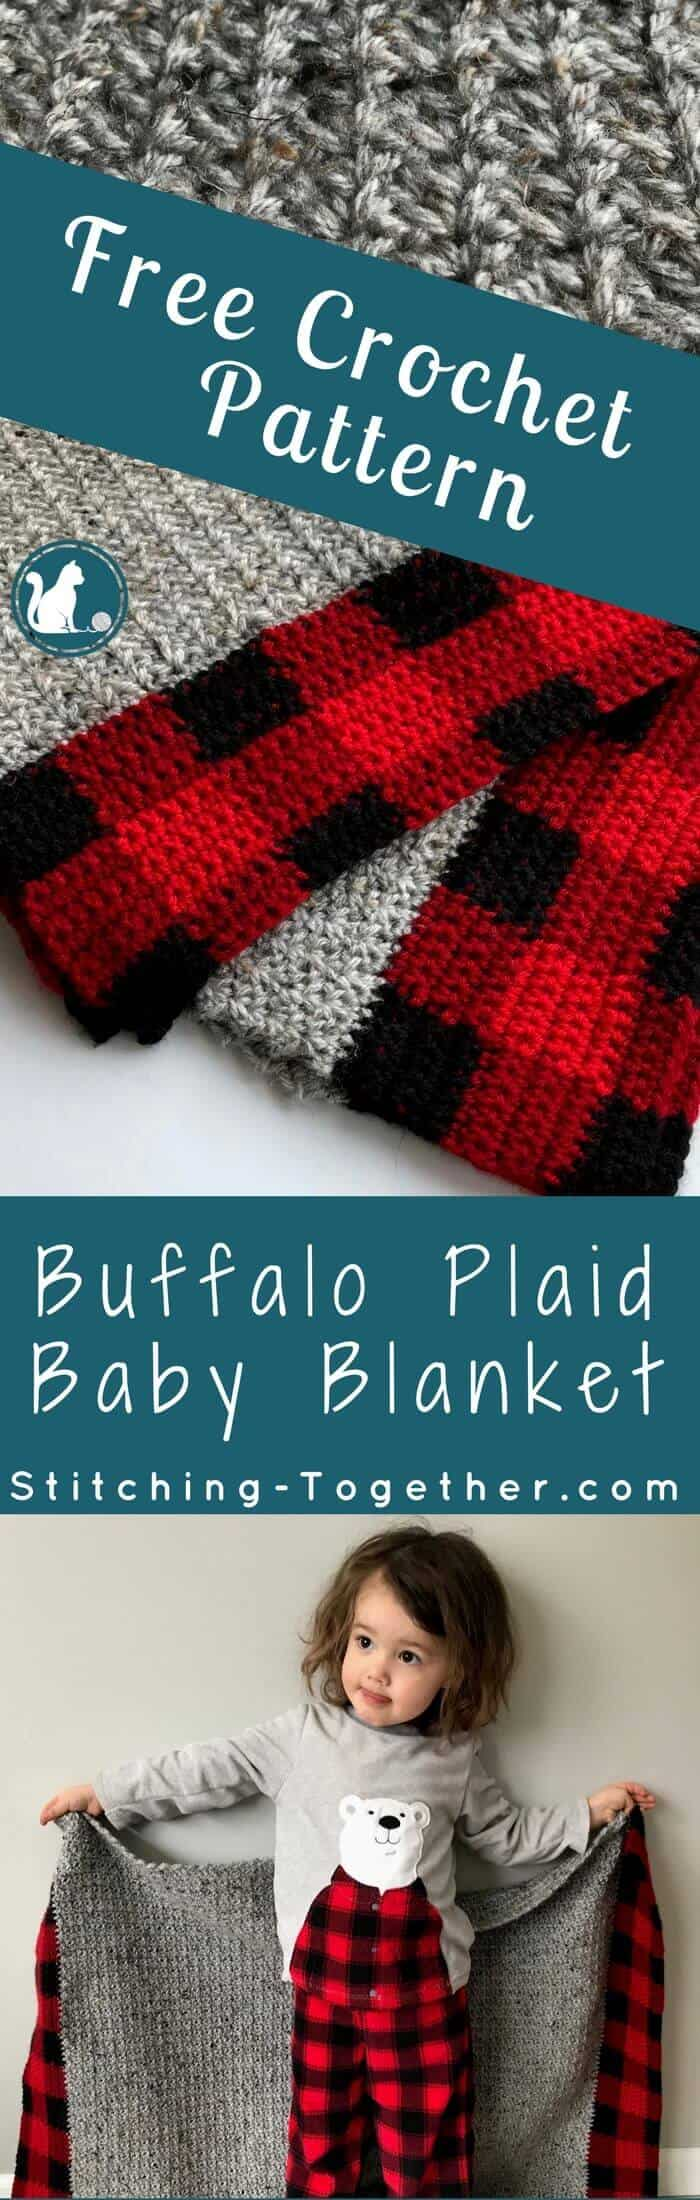 I am in love with this Buffalo Plaid Baby Blanket! What a perfect gift for the trendiest baby. I can't get over the texture of those beautiful stitches. With this free crochet pattern I can make the perfect baby show gift! | Crochet Baby Blanket